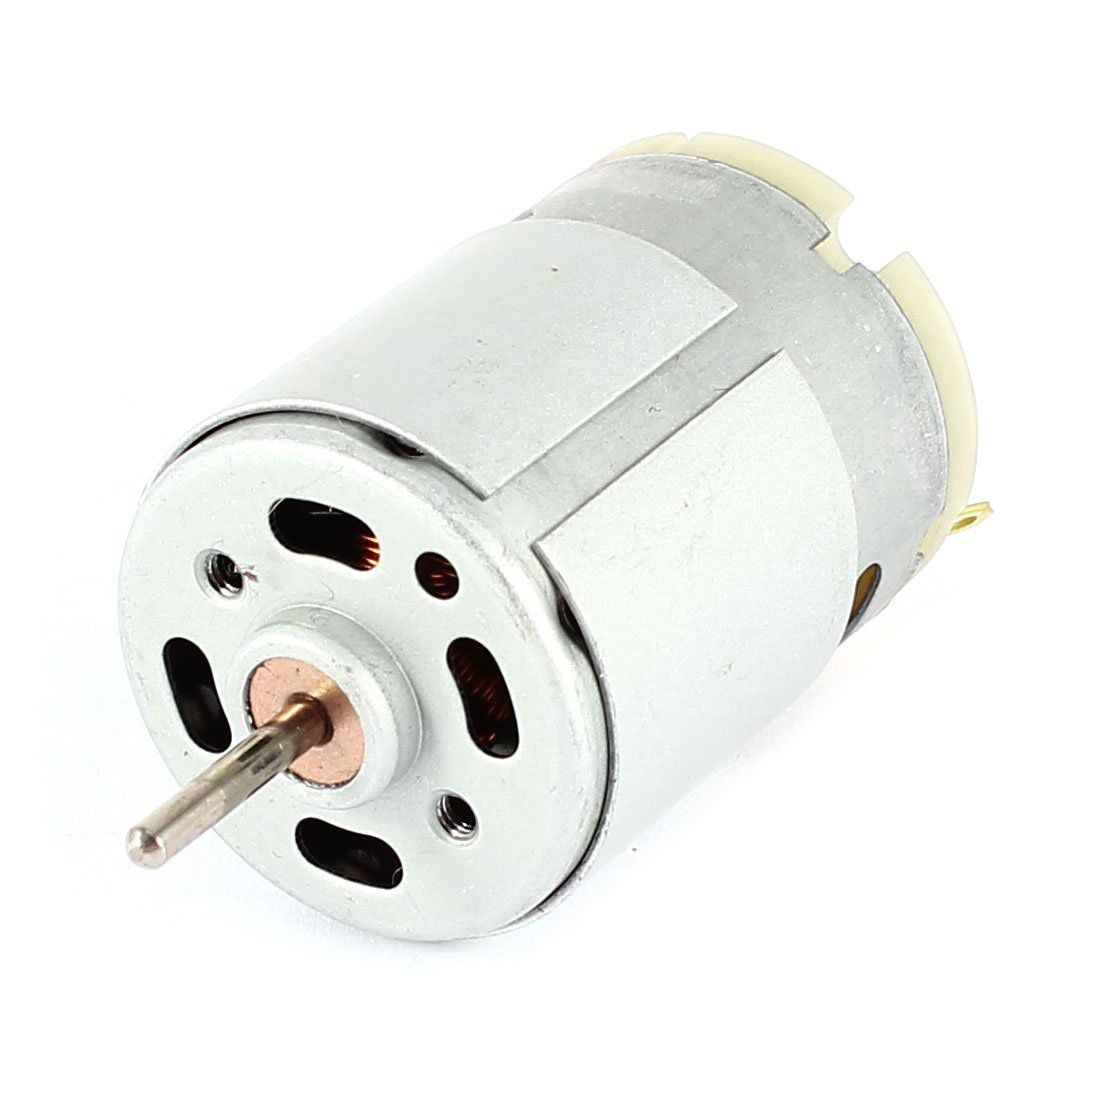 High Quality Rs380 Dc 1 5 18v 30000rpm Micro Motor 38x28mm For Rc Model Toys Diy Silver Electric Motor For Bicycle Industrial Electric Diy Toys